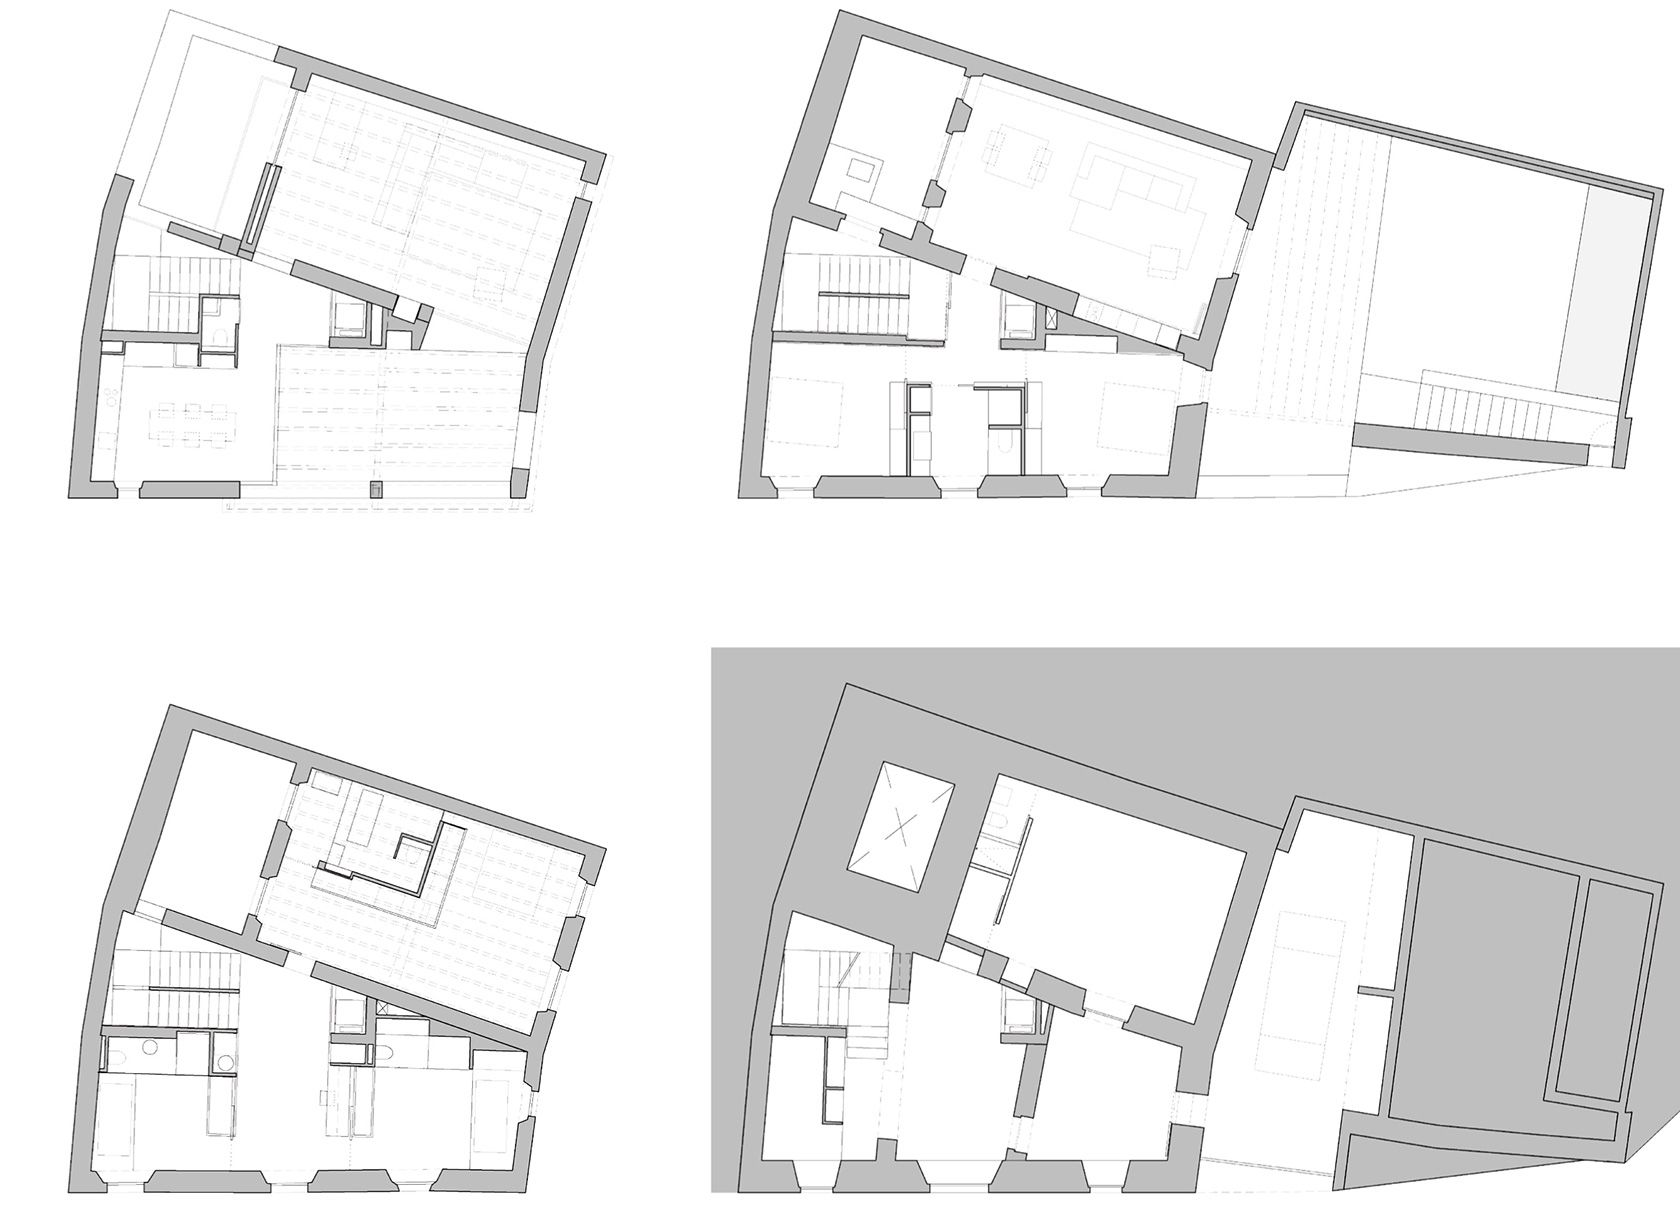 alemanys 5 housing architecture anna noguera